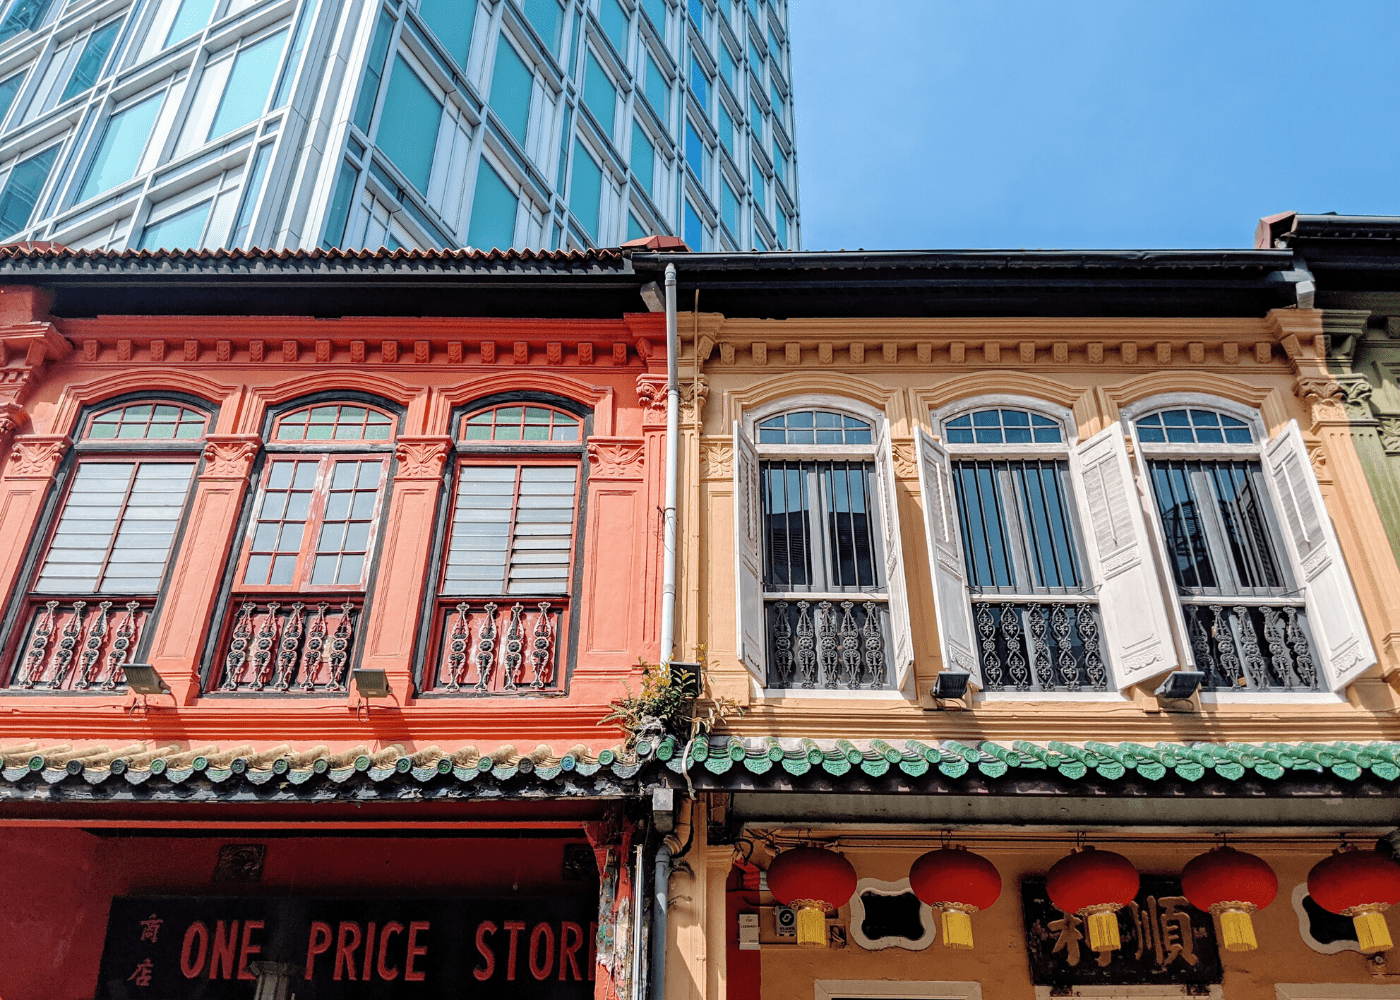 Bars along Emerald Hill Singapore | Guide to Emerald Hill